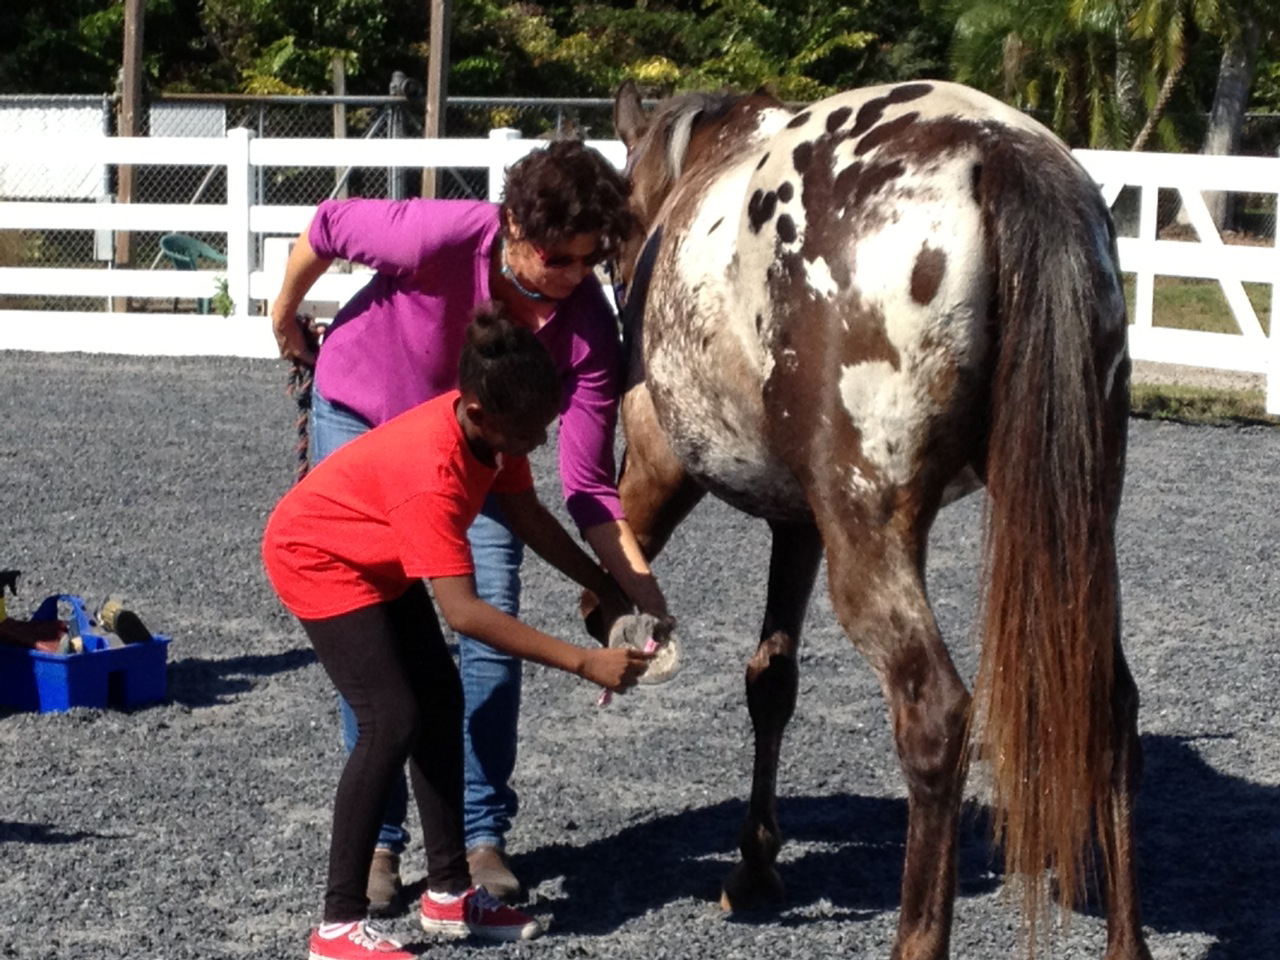 Psychologist turns to horses as therapy for kids in foster care